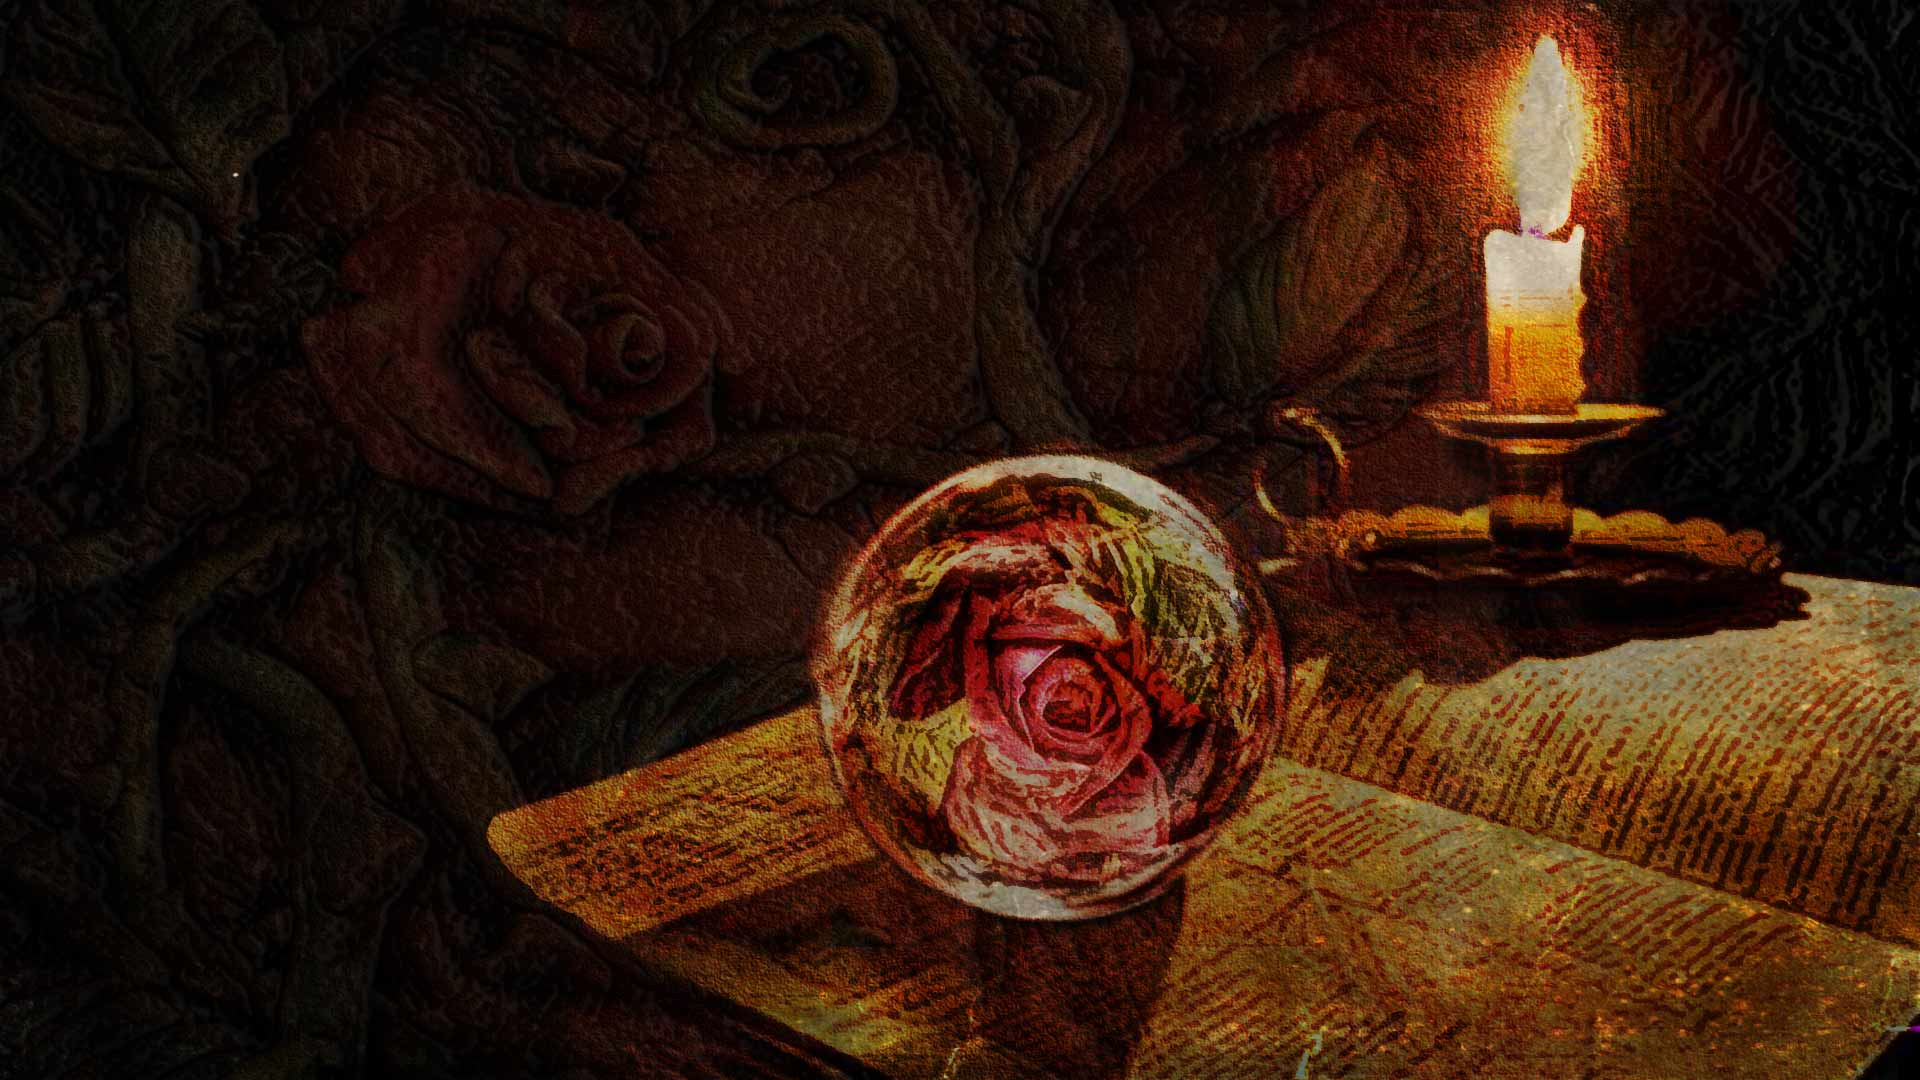 A rose crystal ball, a candle, an open book